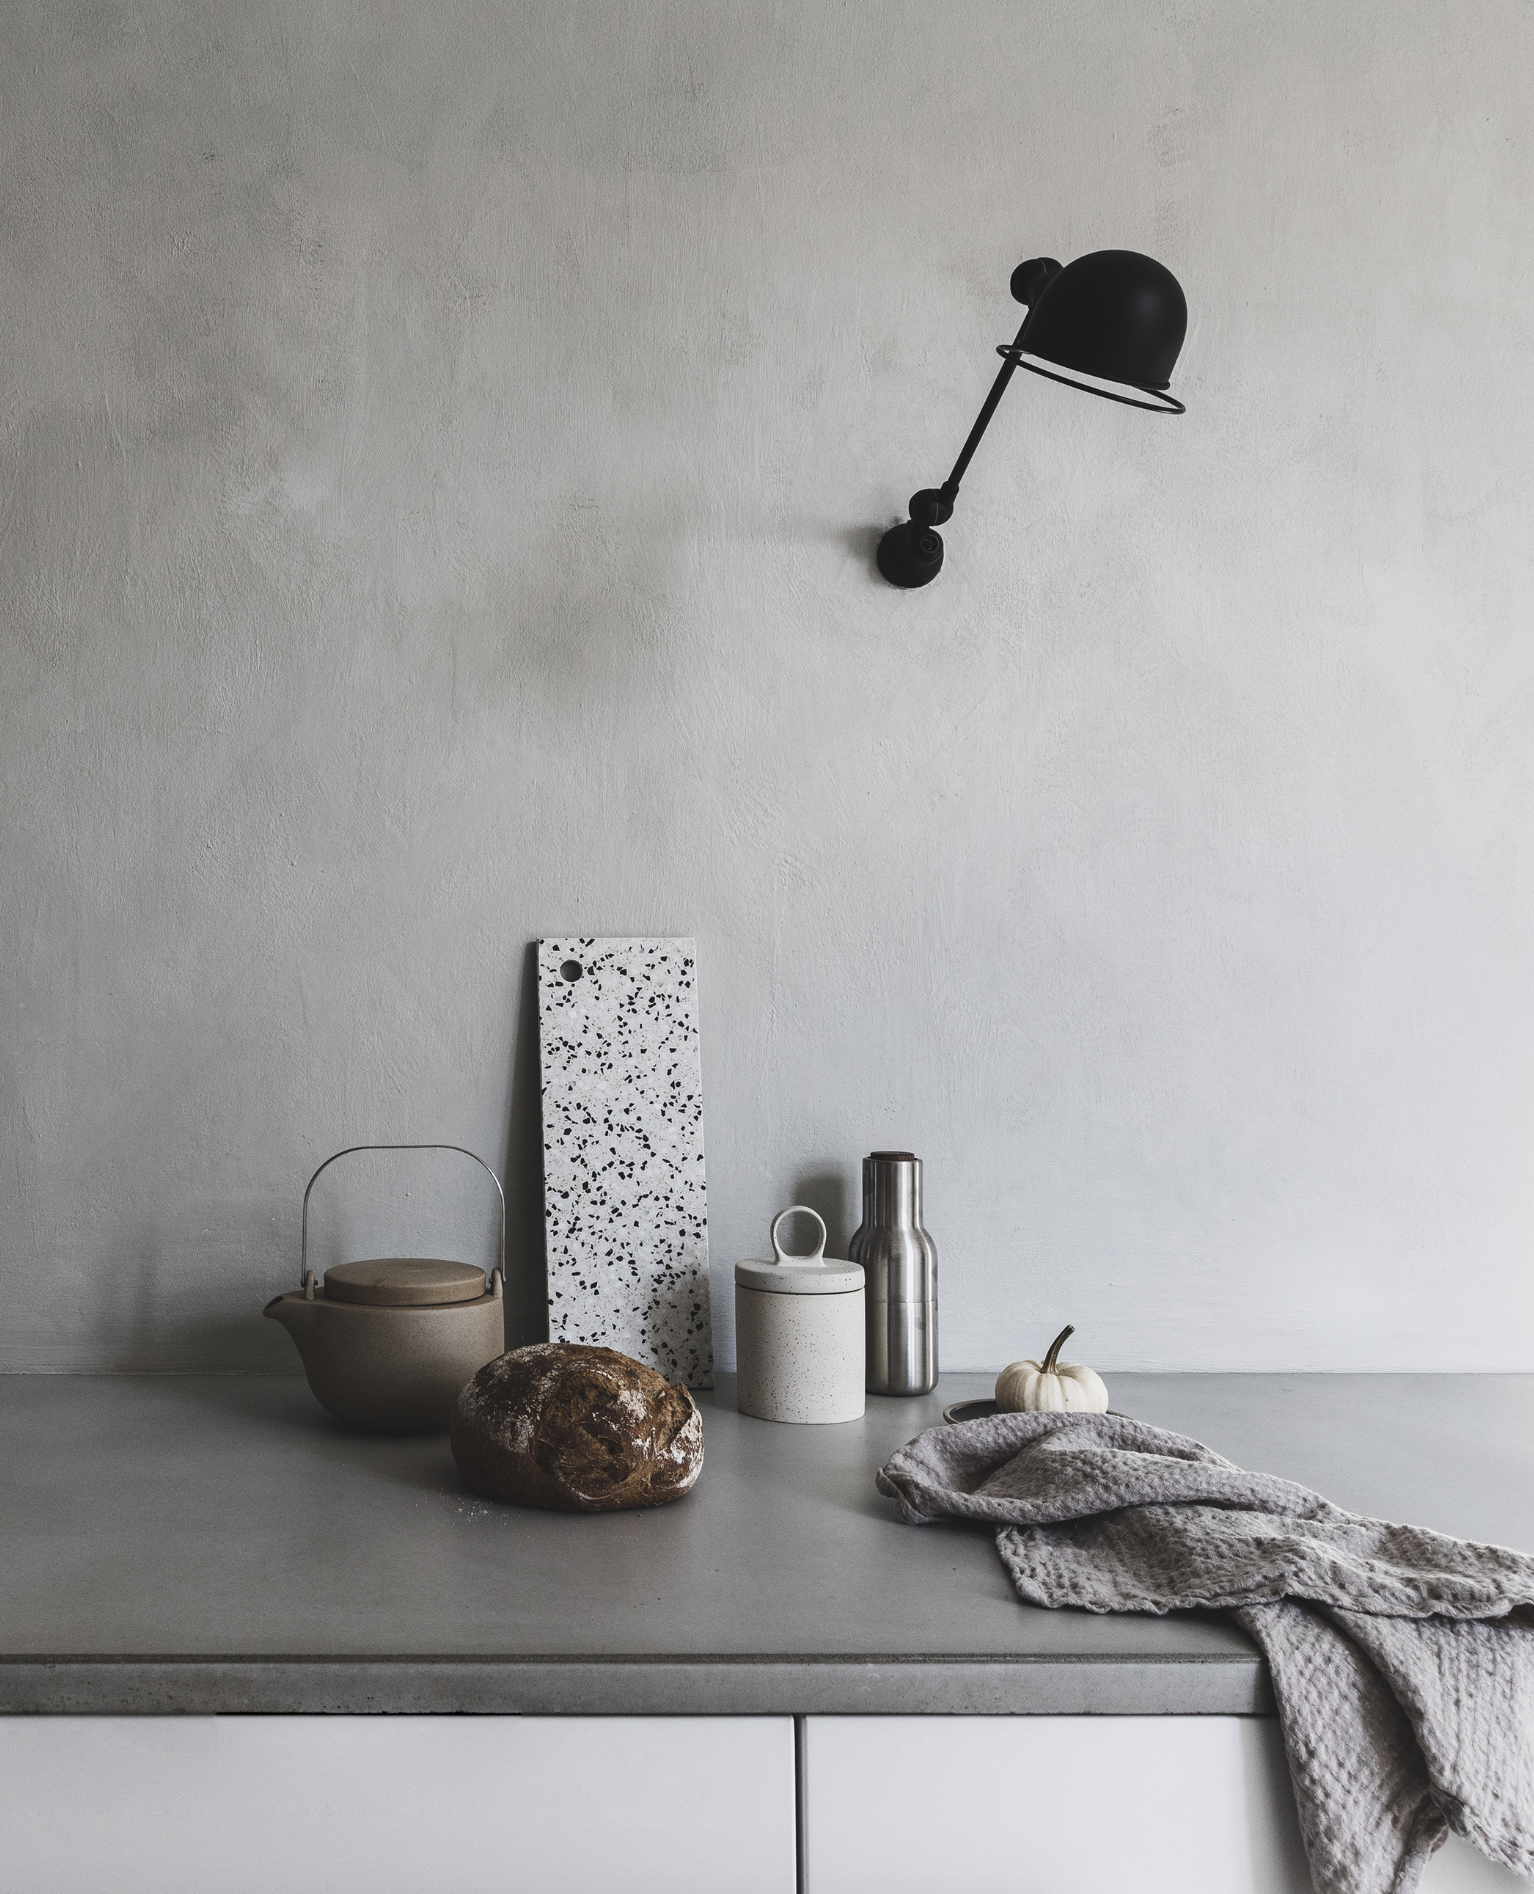 Cathrine Bækken s home - via Coco Lapine Design blog 36b48c90efb77